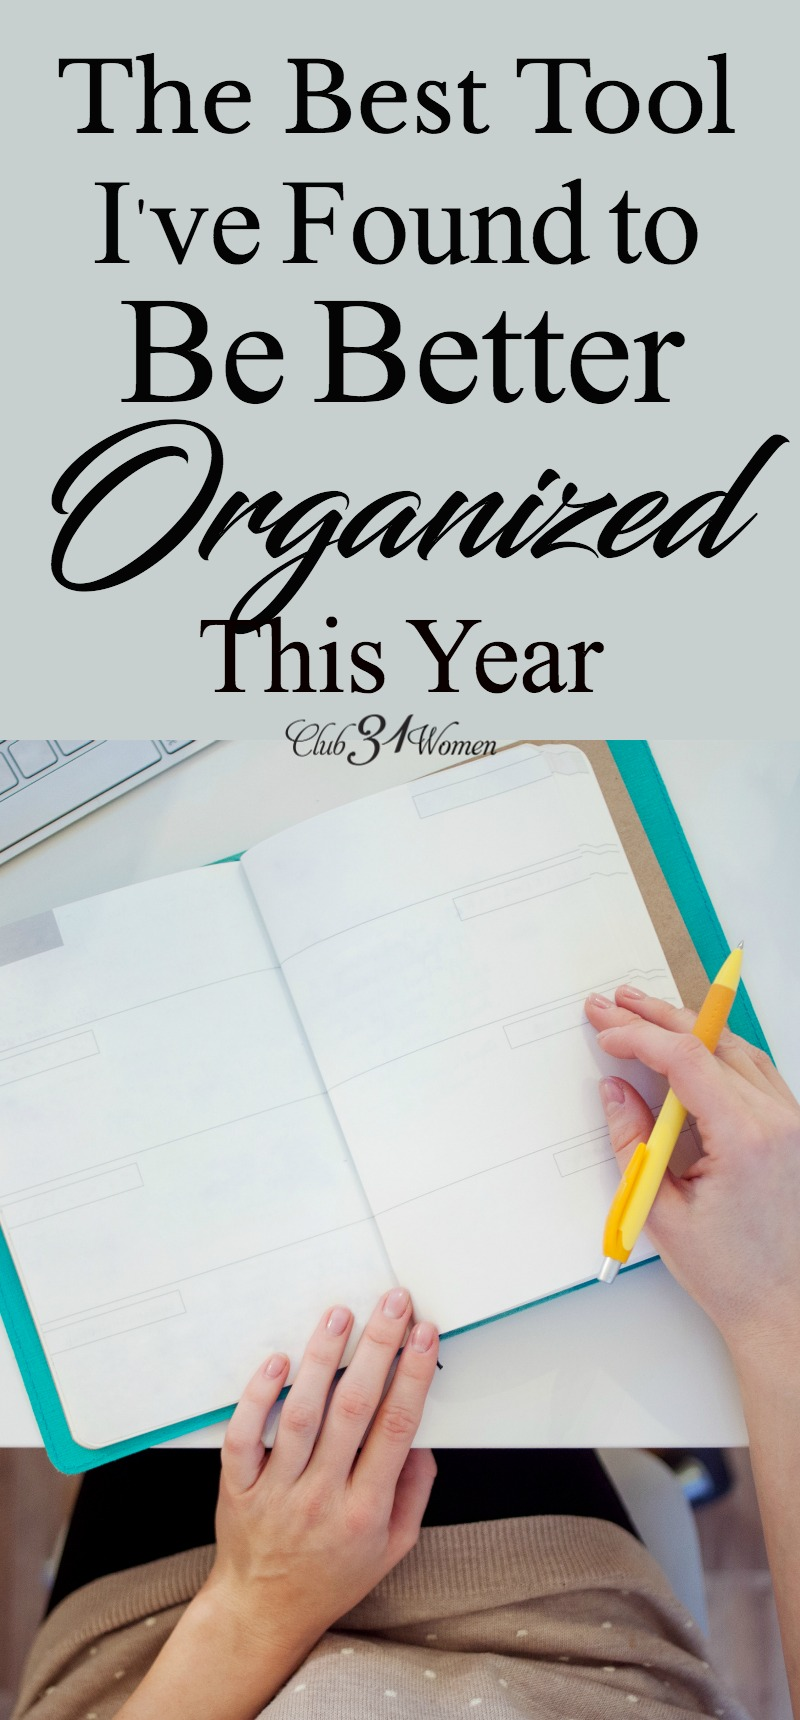 I am determined to be better organized this year! I'm so ready for things to run more smoothly and to reduce our stress. And here's the best tool I've found to help! via @Club31Women